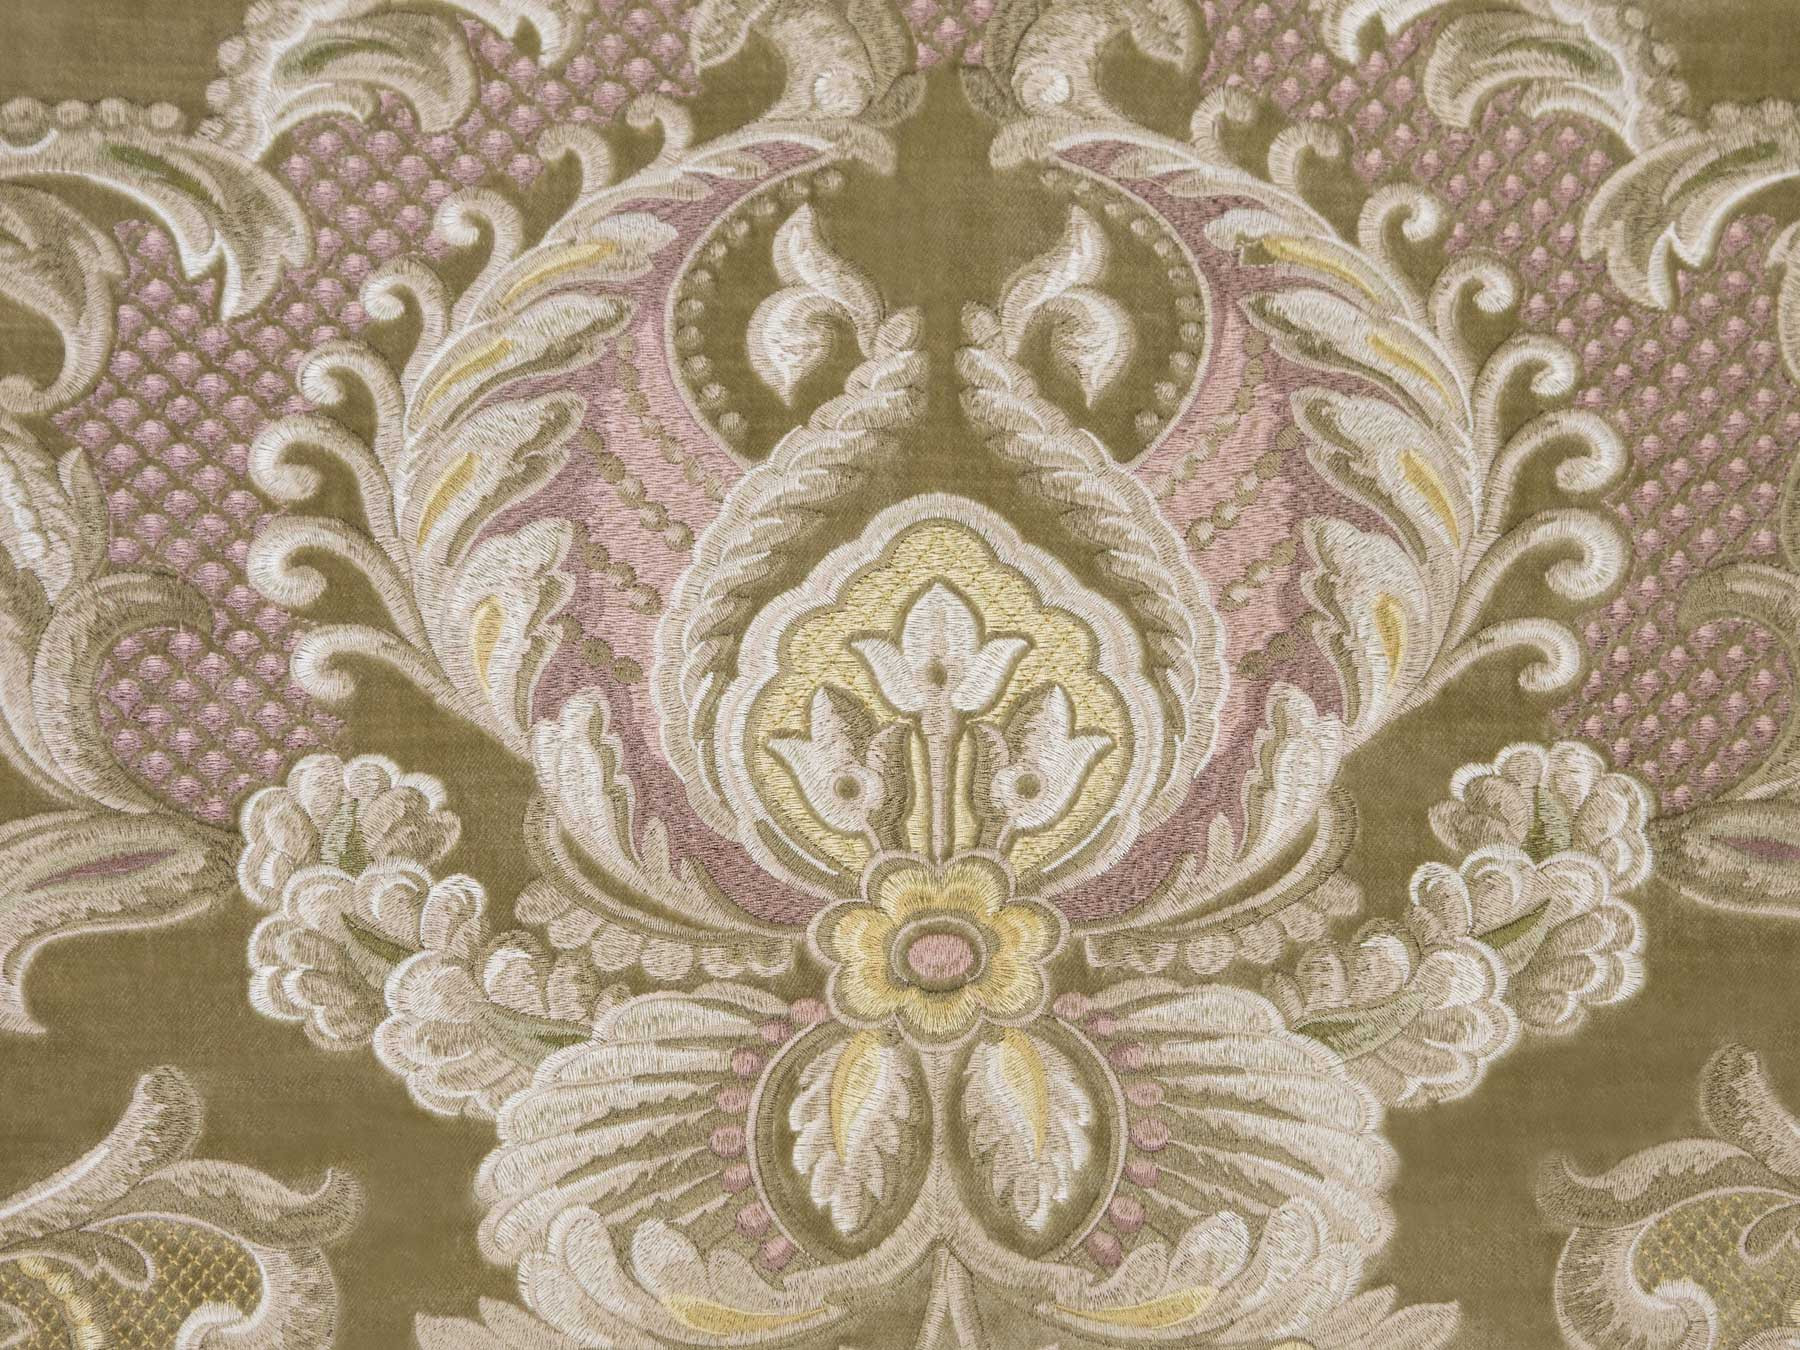 221/21 Trianon/Beige-Rose Коллекция: Showroom collection Part 2